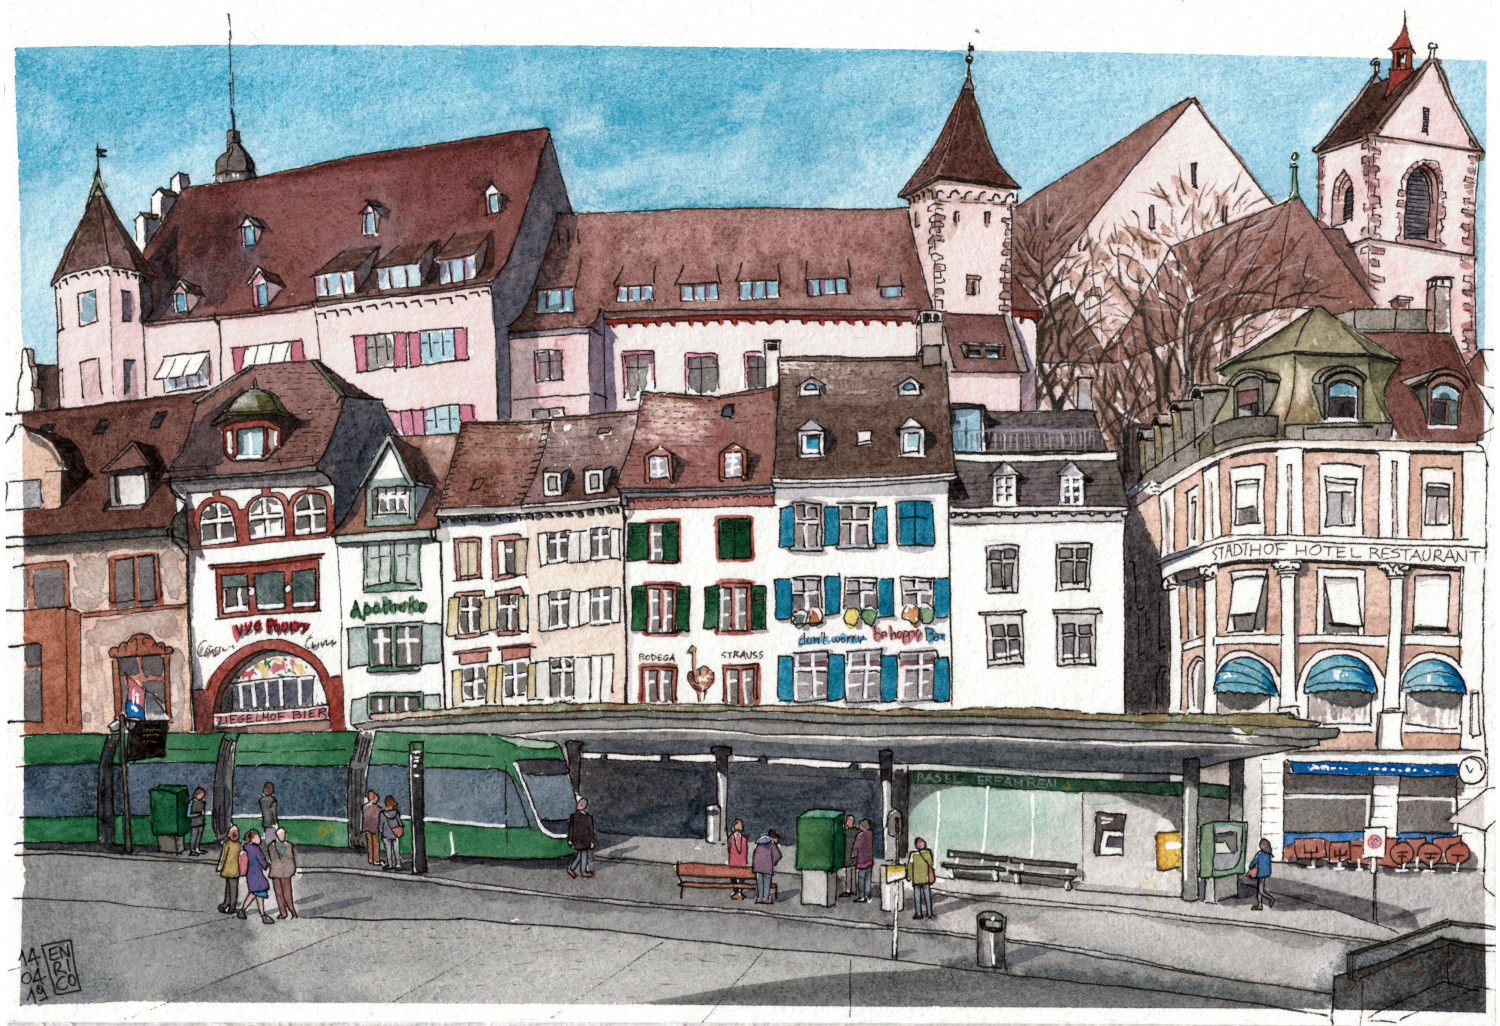 This is a commission for a friend's grandmother. She liked Basel trams. This is the tram stop in Barfusseplatz, always very busy. Behind various restaurants and bars facing the square, the Lohnhof is towering, former monastery, former prison, now museum/hotel/jazz club.